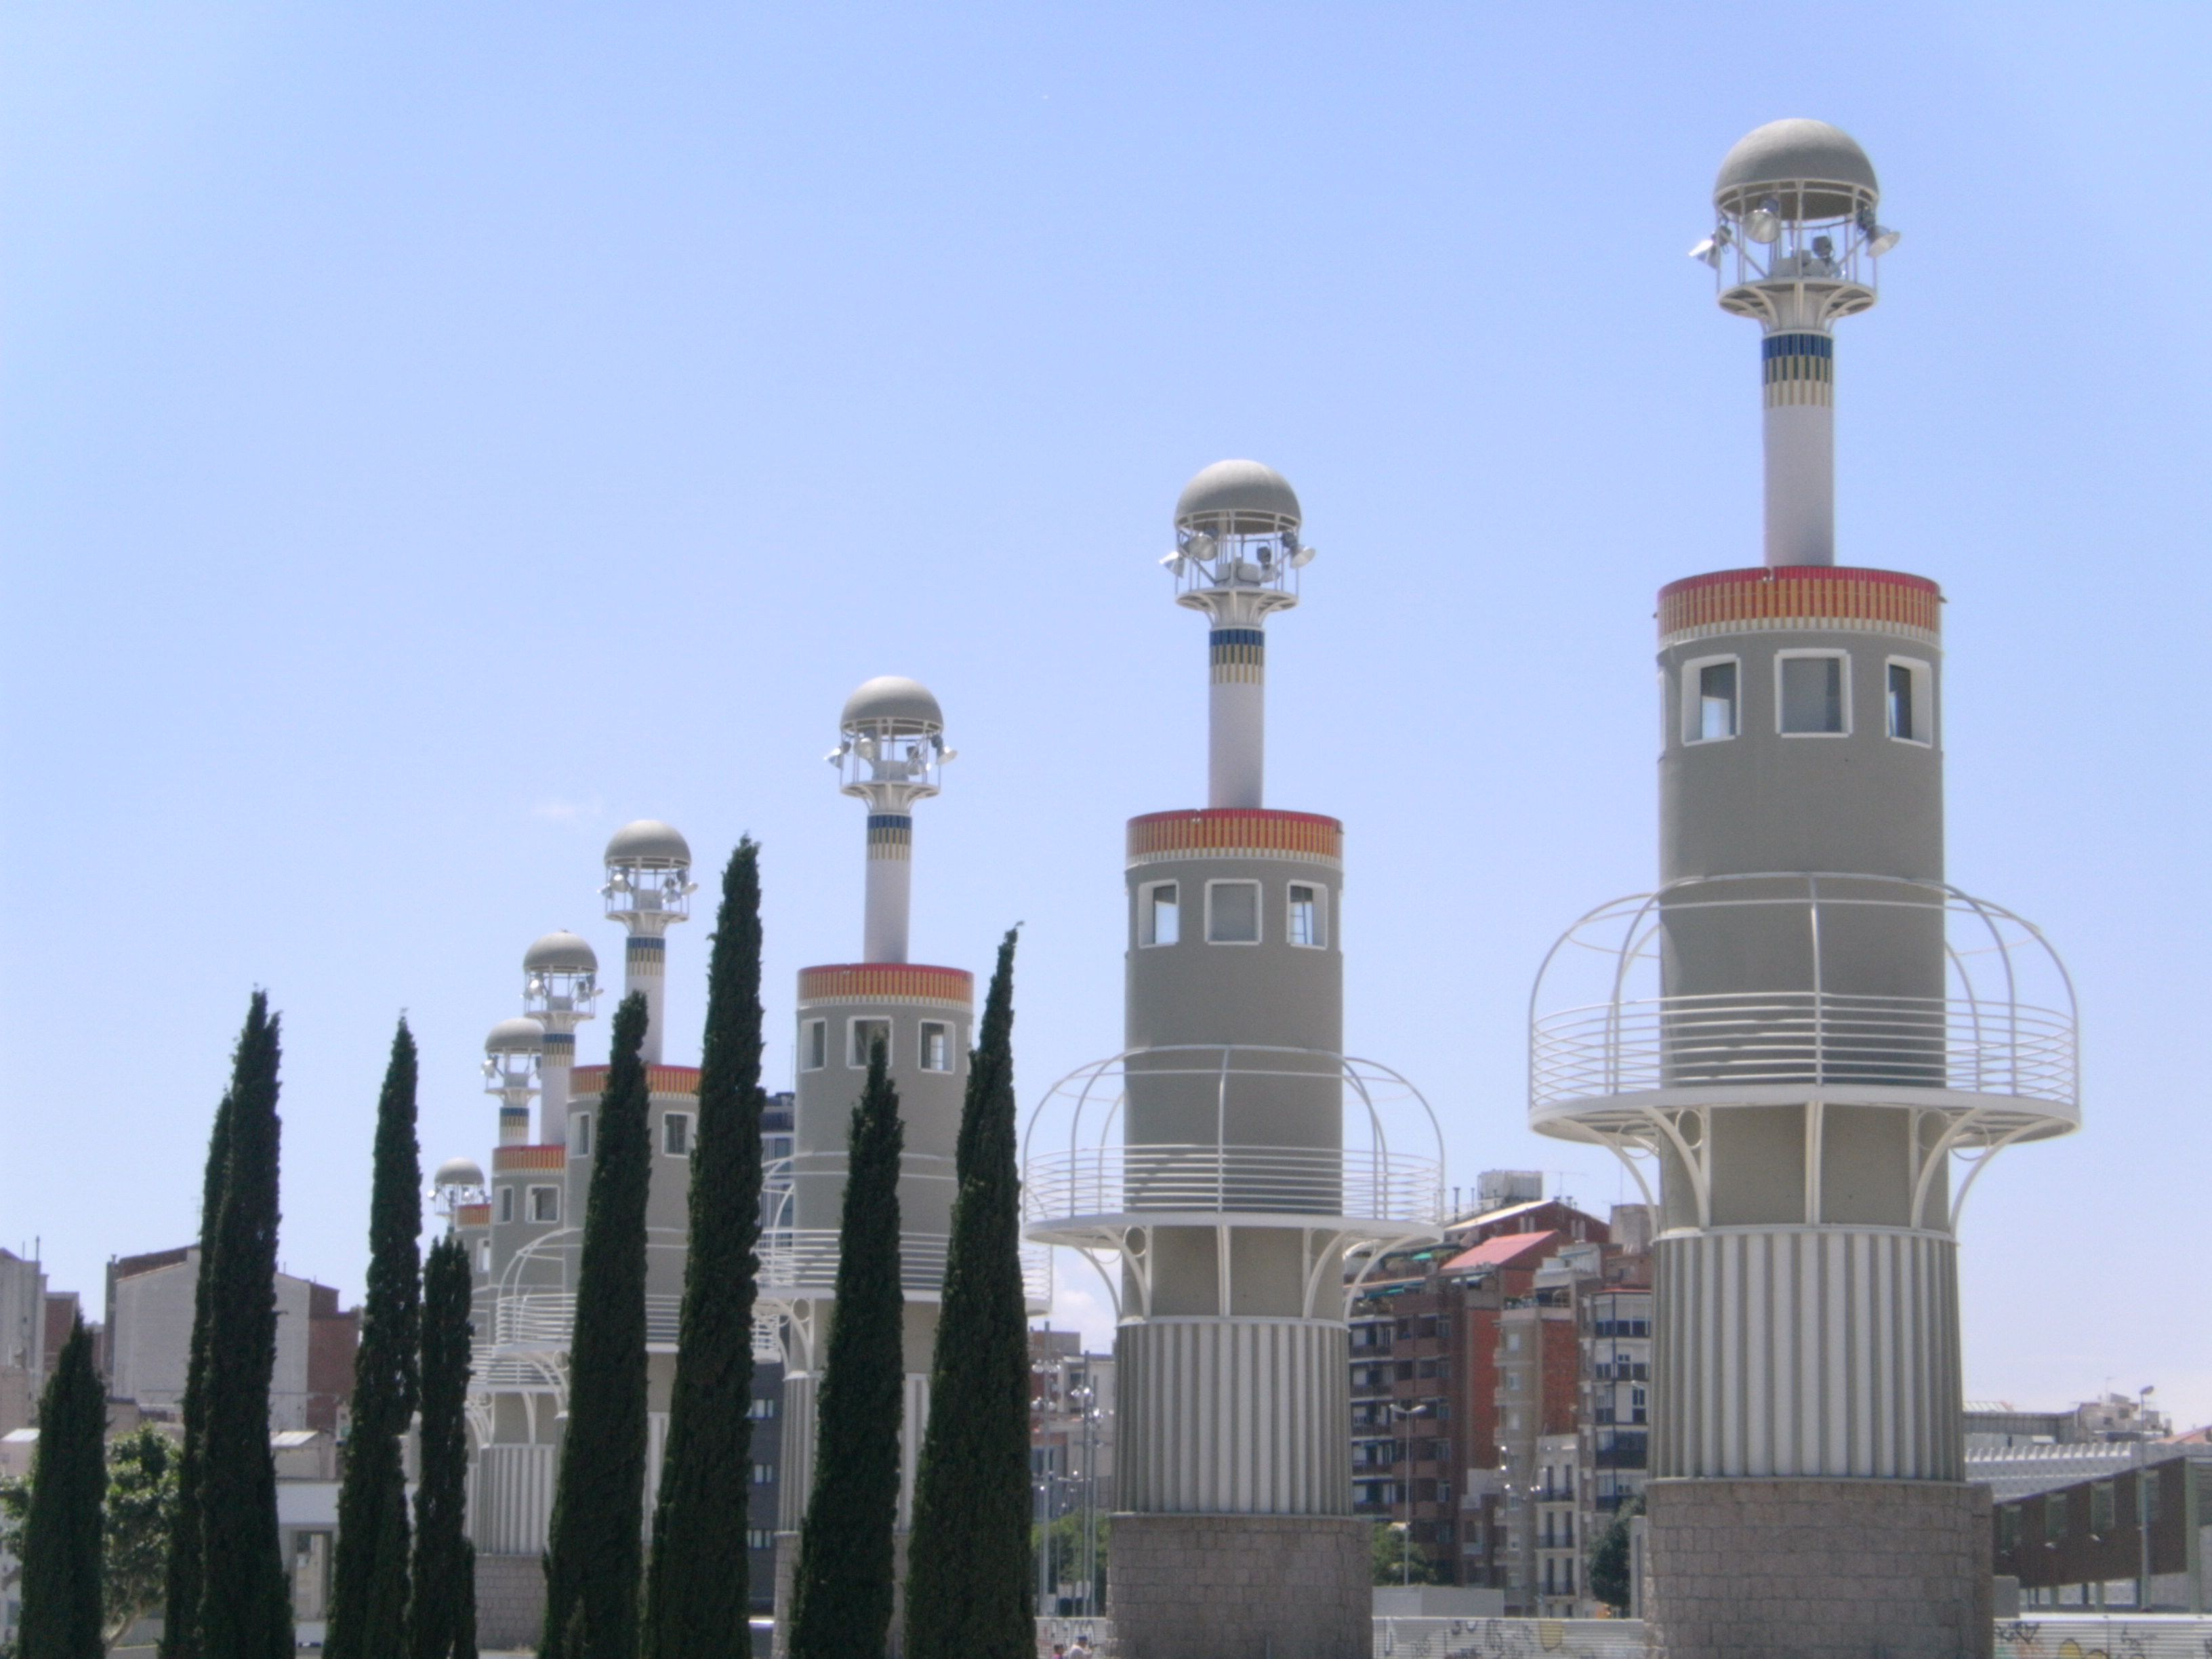 Even the lighthouses are cool looking in Barcelona, Spain